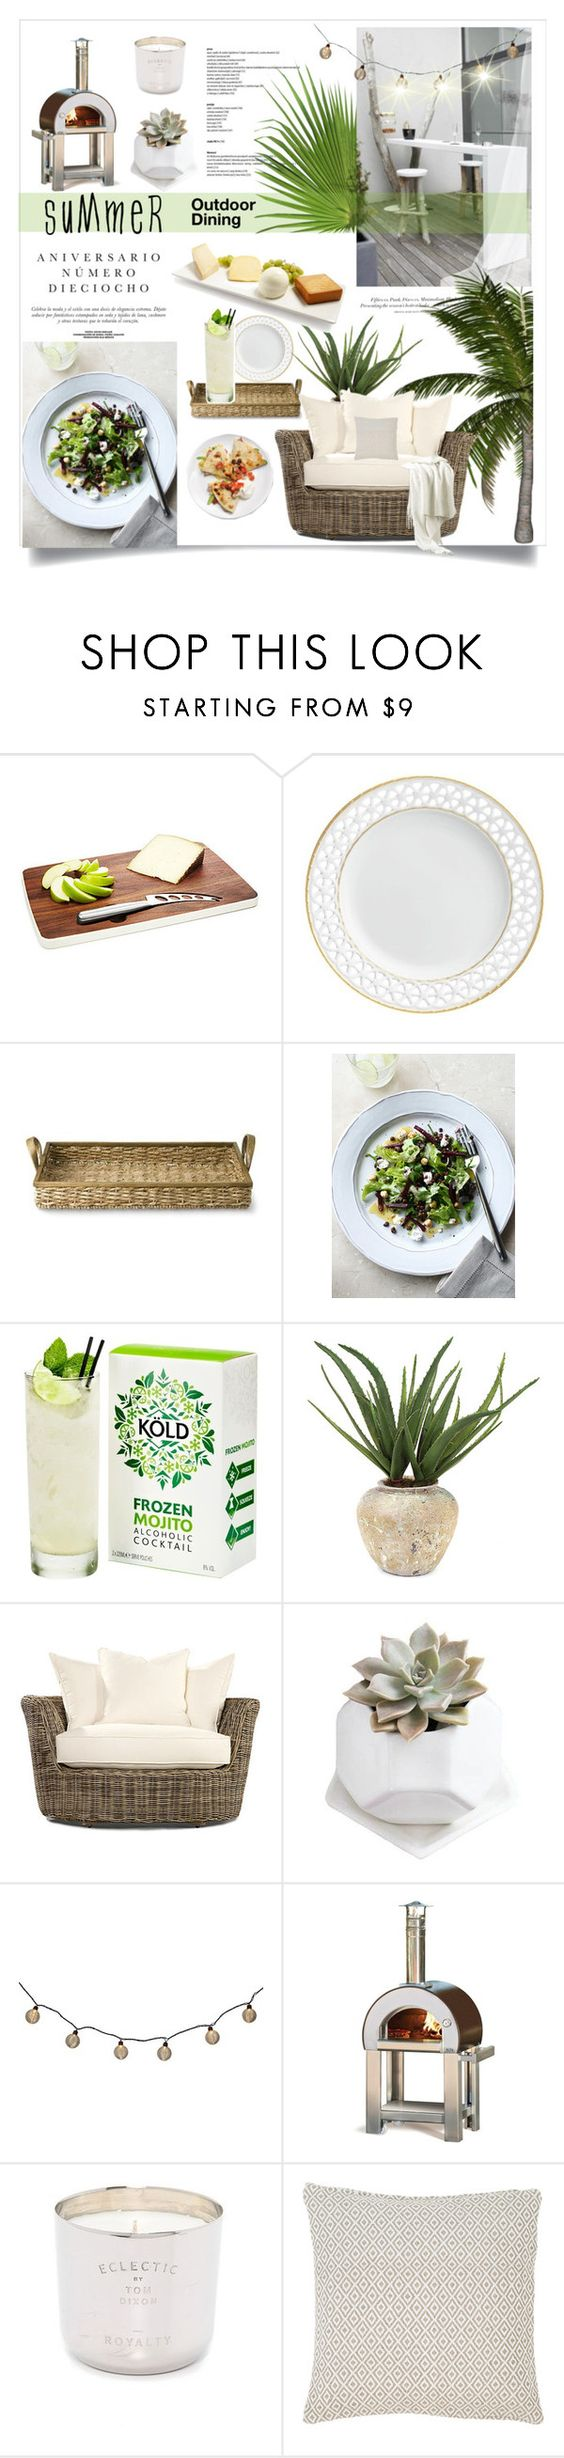 """Summer Outdoor Dining"" by rever-de-paris ❤ liked on Polyvore featuring interior, interiors, interior design, home, home decor, interior decorating, Sinclair, Fürstenberg, Williams-Sonoma and John-Richard"